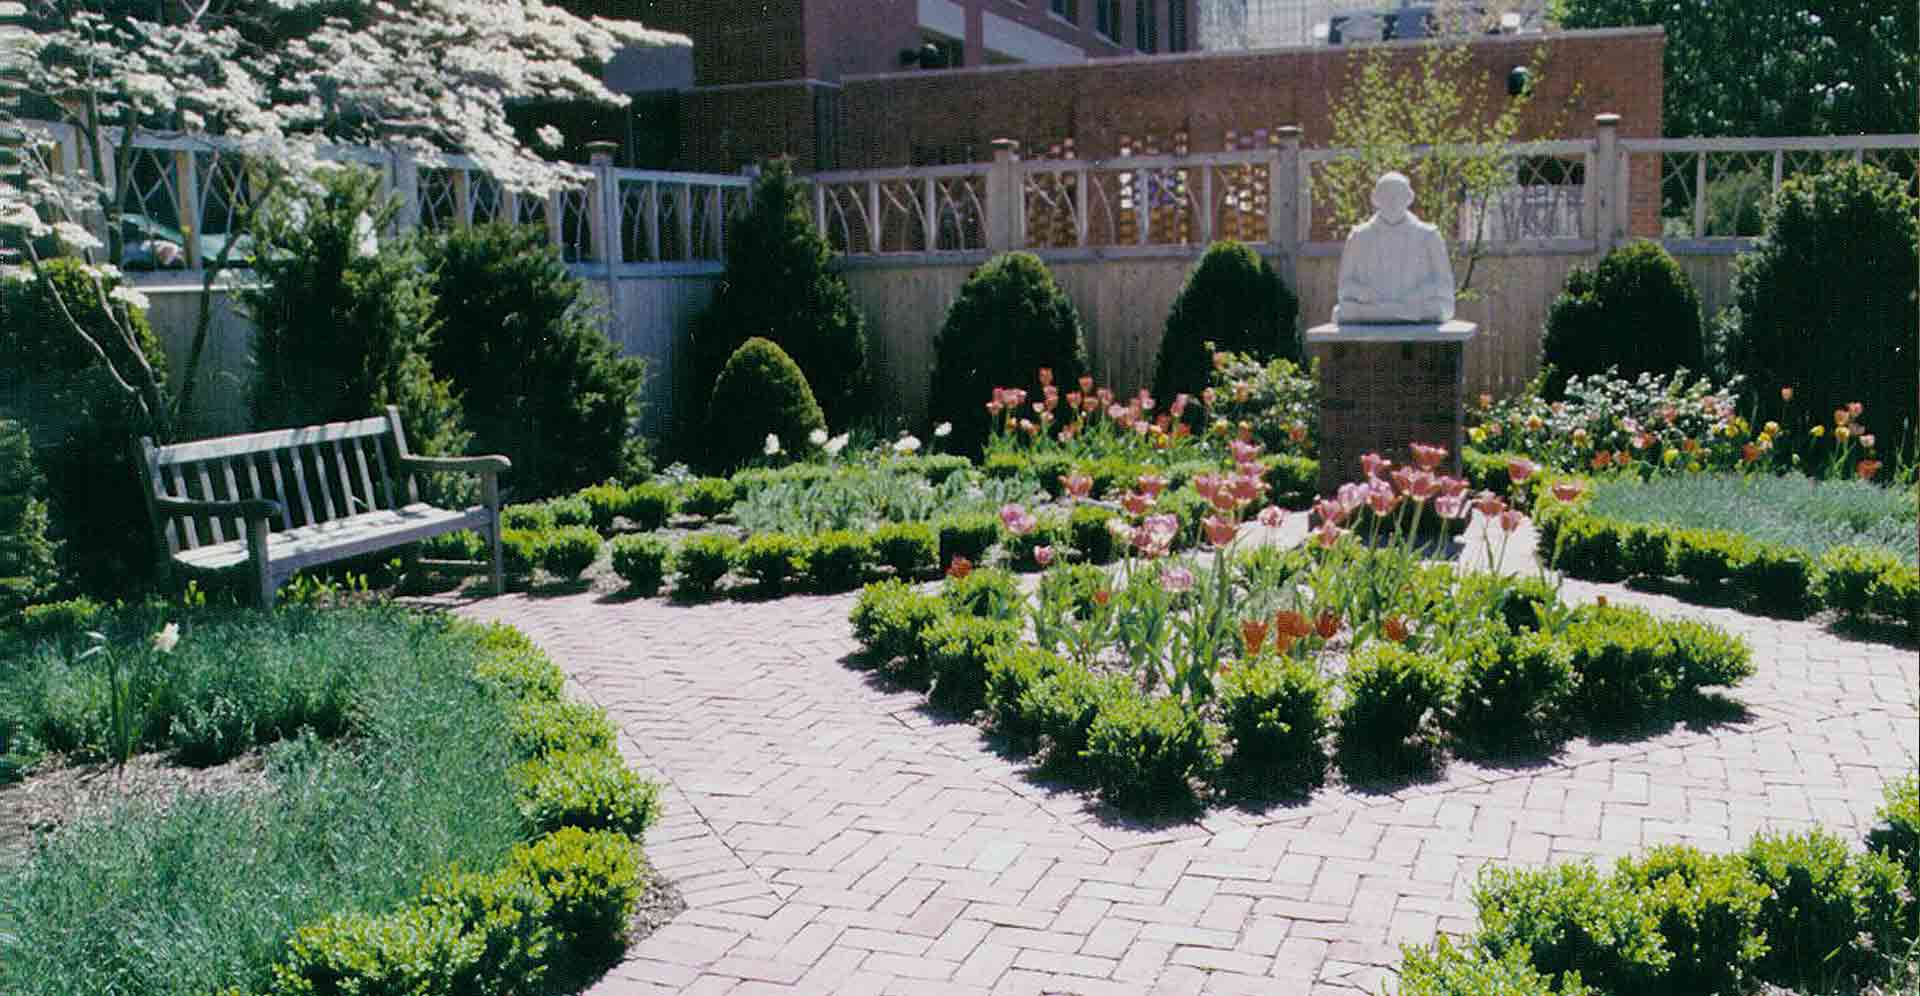 ELIZABETHAN-LIBRARY-GARDEN-BRICK-WALKWAY-AND-STATUE.jpg